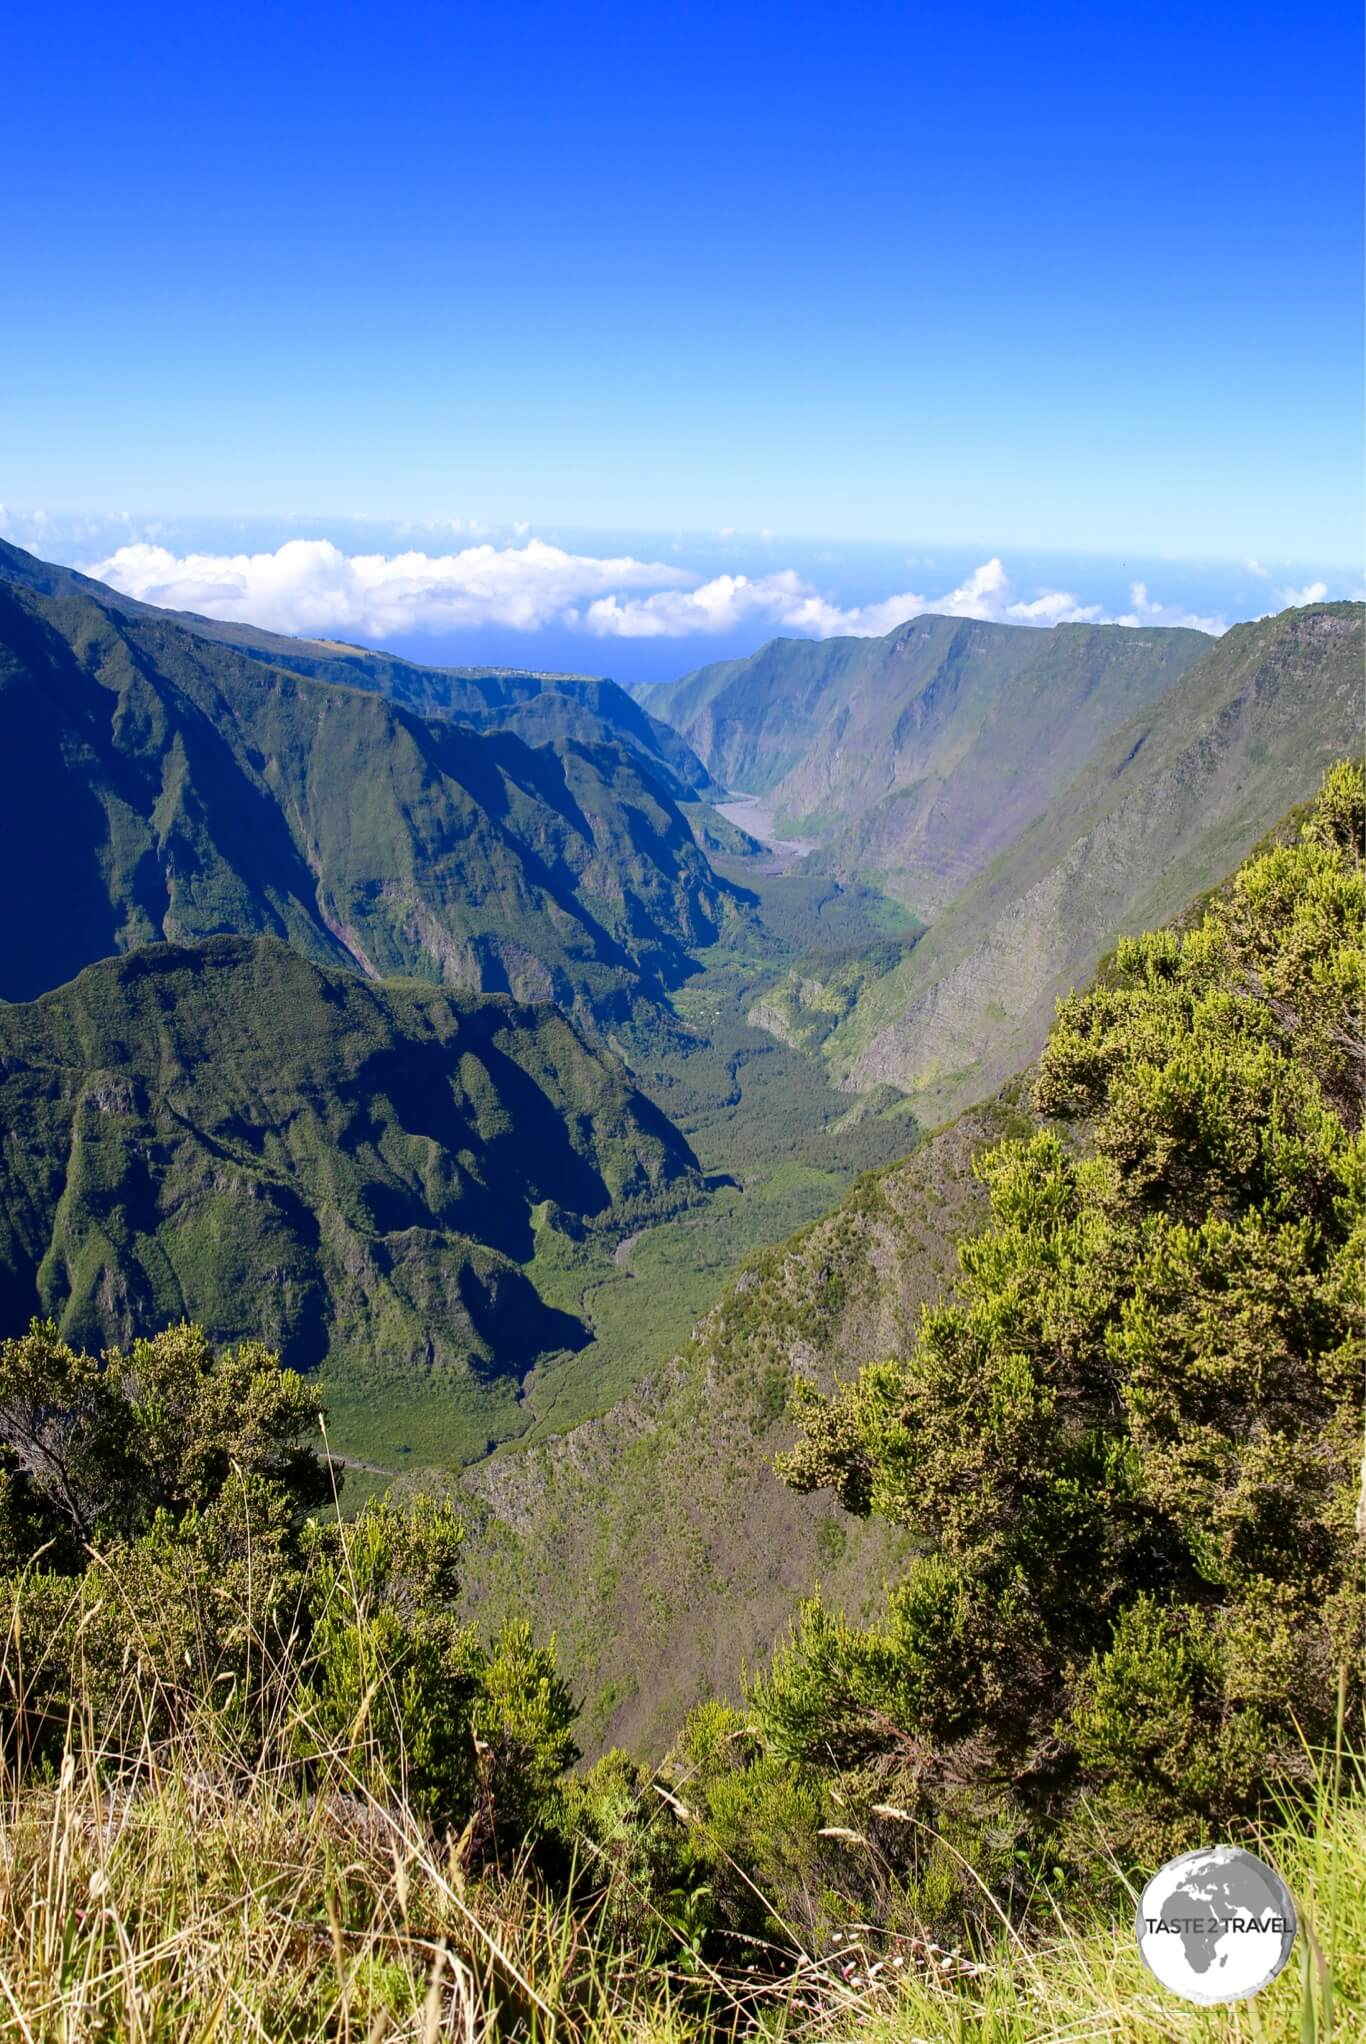 Another jaw-dropping view on the way to the Piton de la Fournaise – the Point de Vue Après Nez de Boeuf.